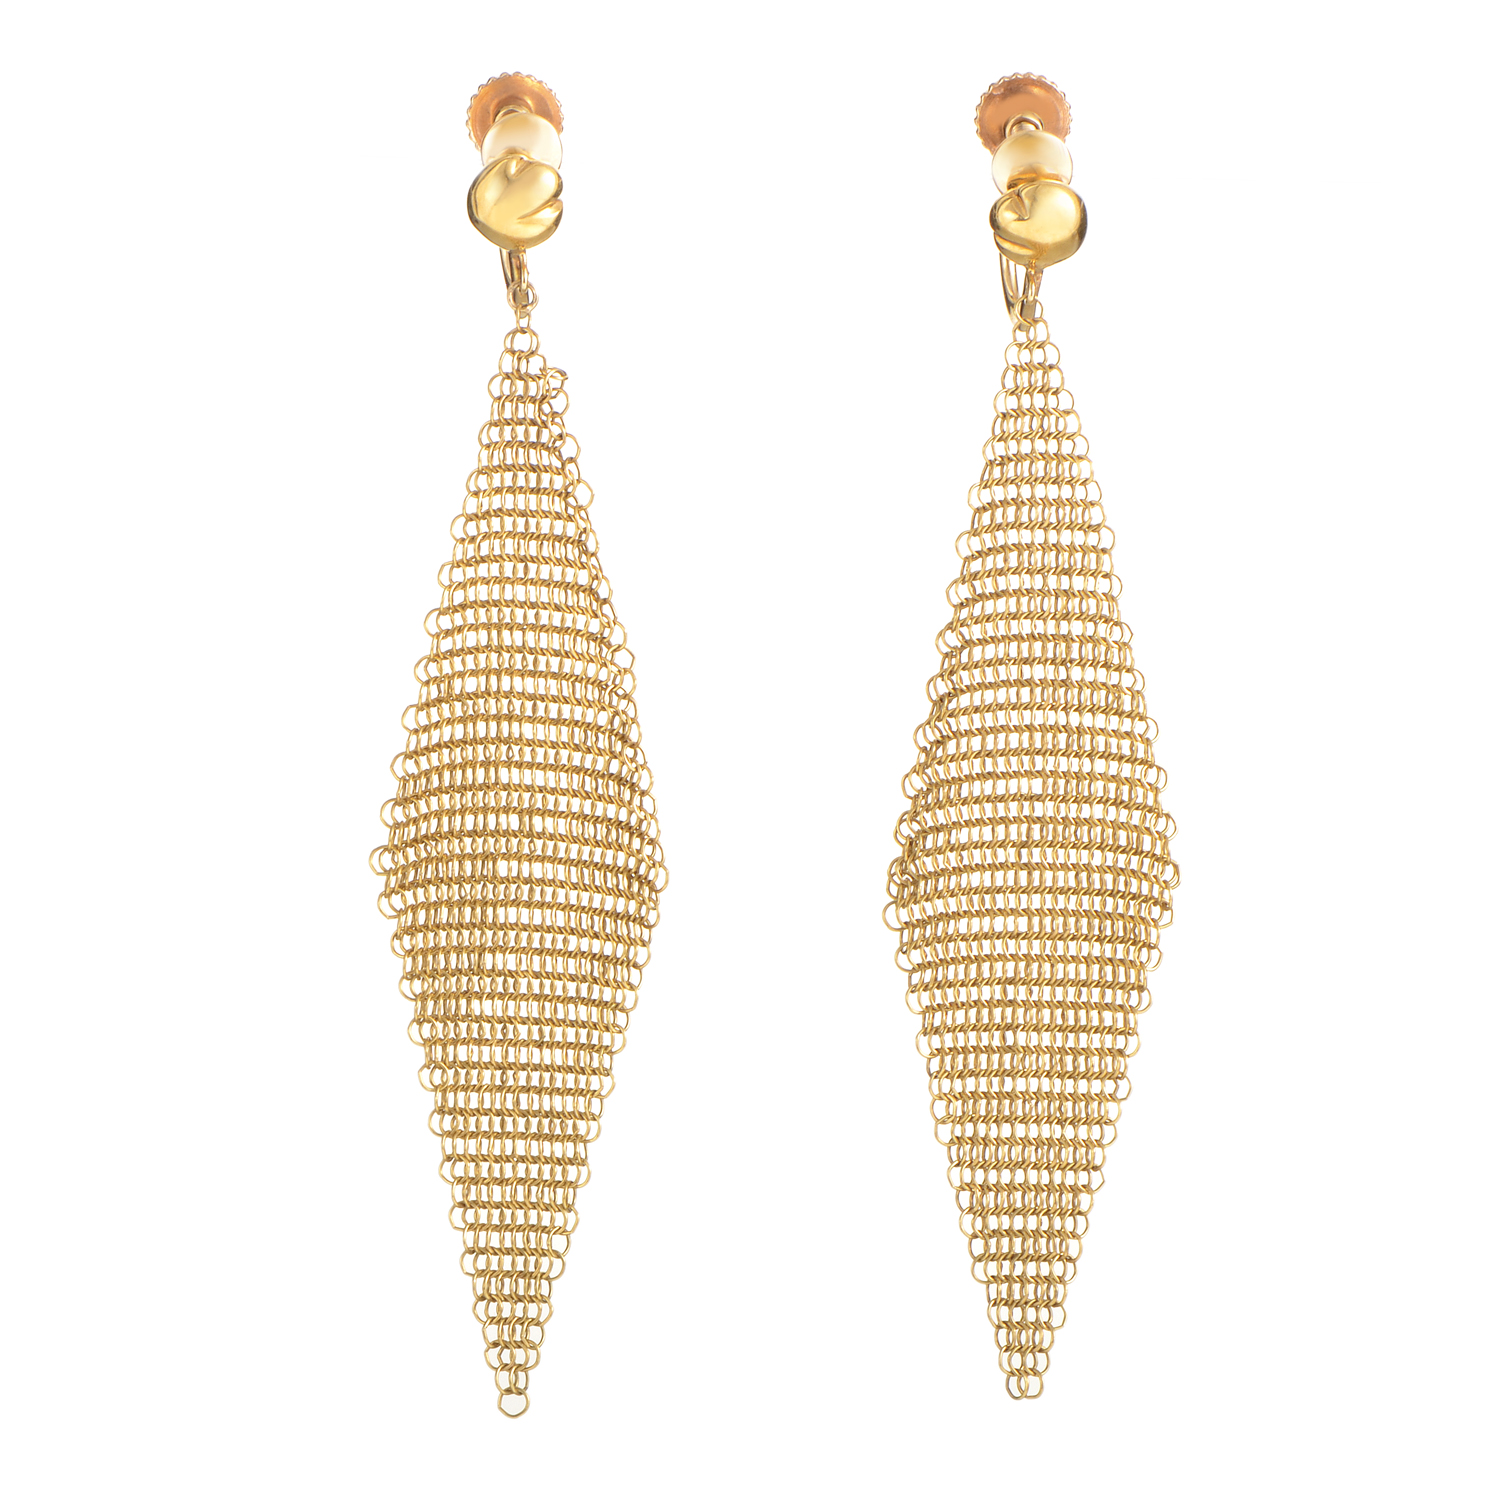 Tiffany & Co. Elsa Peretti Women's 18K Yellow Gold Mesh Earrings AK1B3416